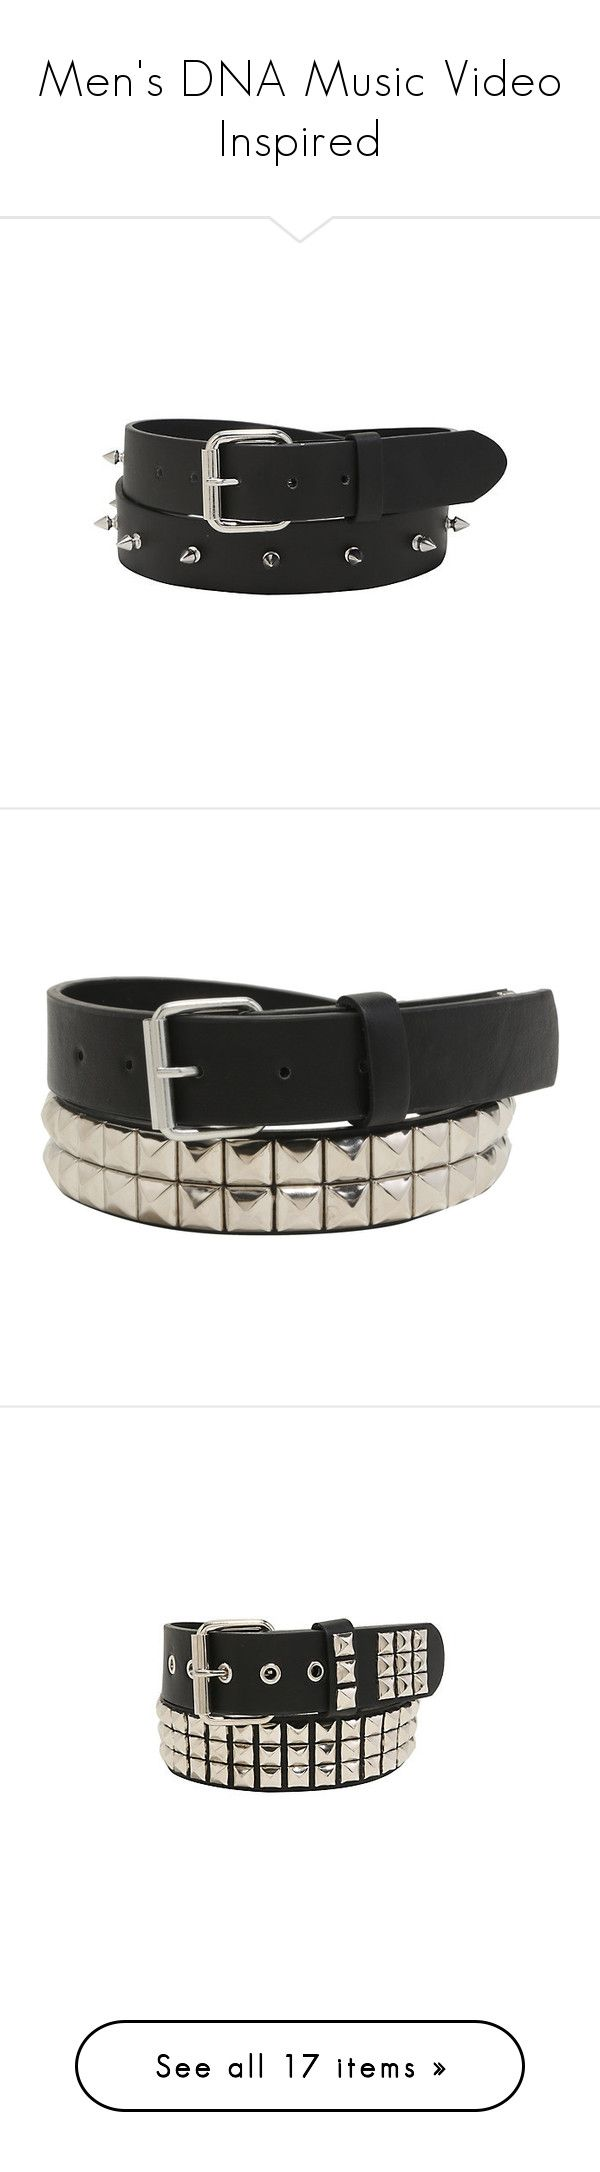 """Men's DNA Music Video Inspired"" by katiehorror ❤ liked on Polyvore featuring accessories, belts, spike belt, vegan belts, round buckle belt, faux leather belt, pyramid belt, leather pyramid stud belt, leather belt and genuine leather belt"